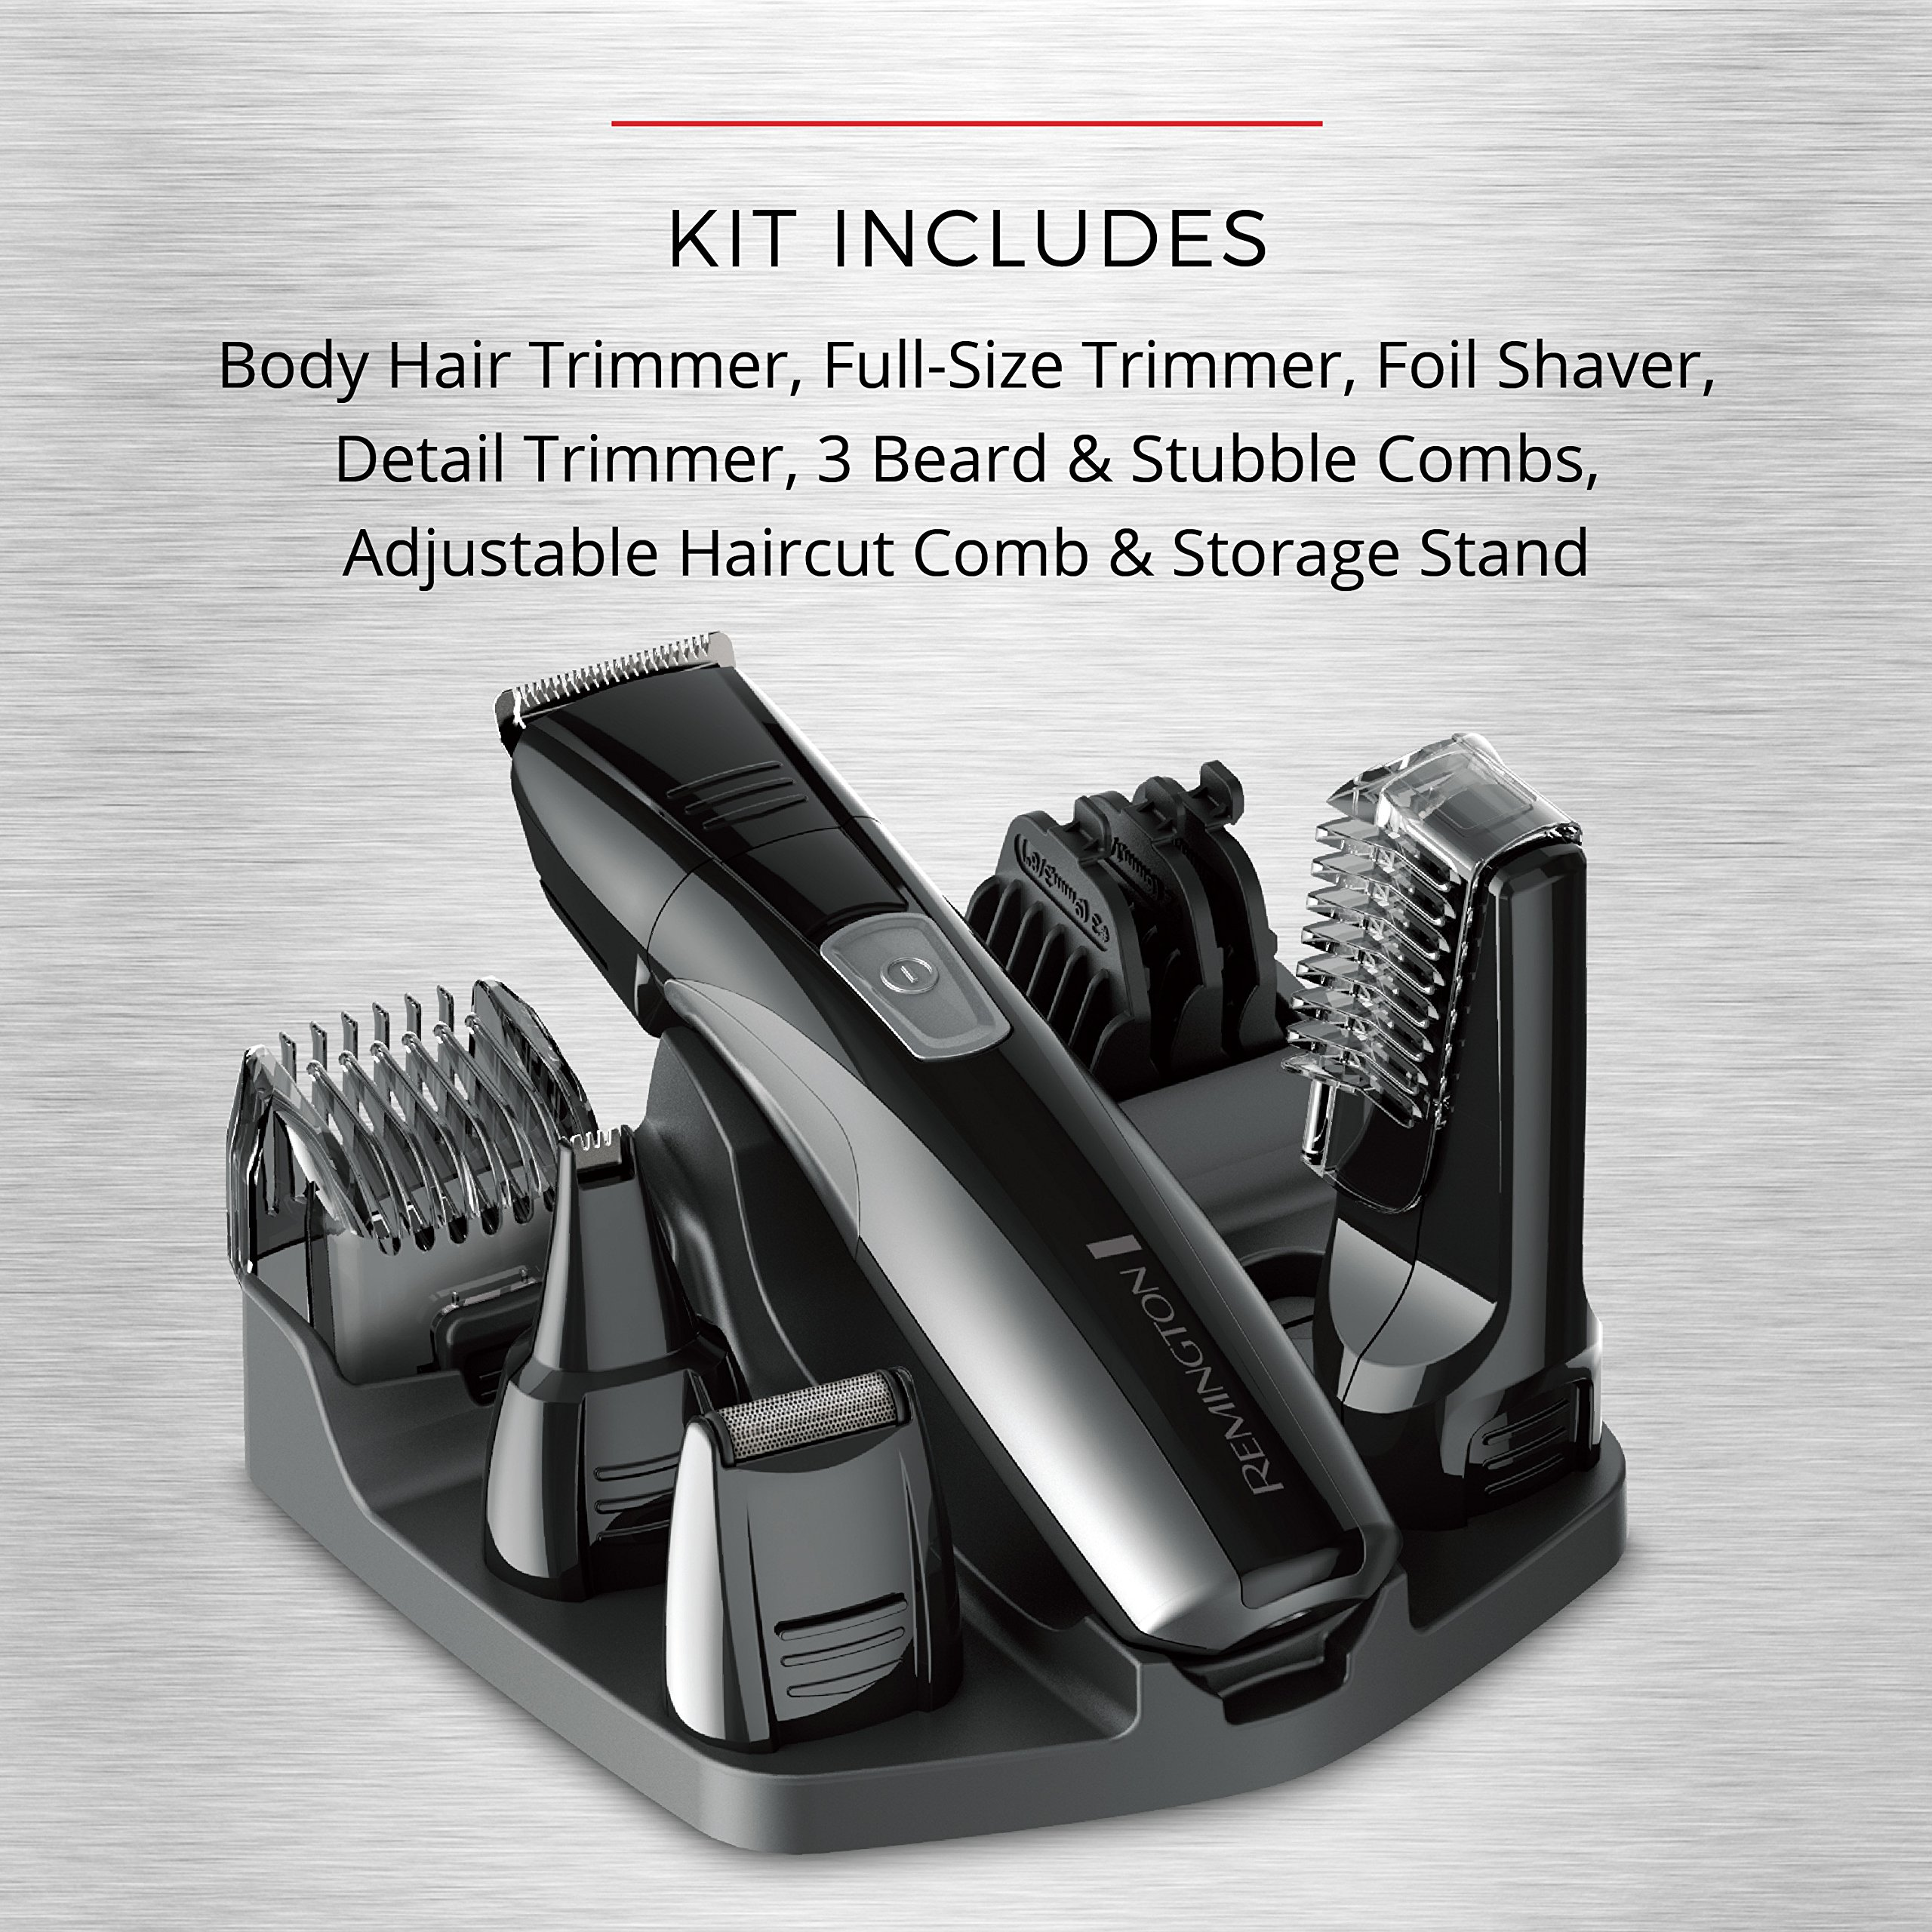 Remington PG525 Head to Toe Lithium Powered Body Groomer Kit, Trimmer (10 Pieces) by Remington (Image #8)